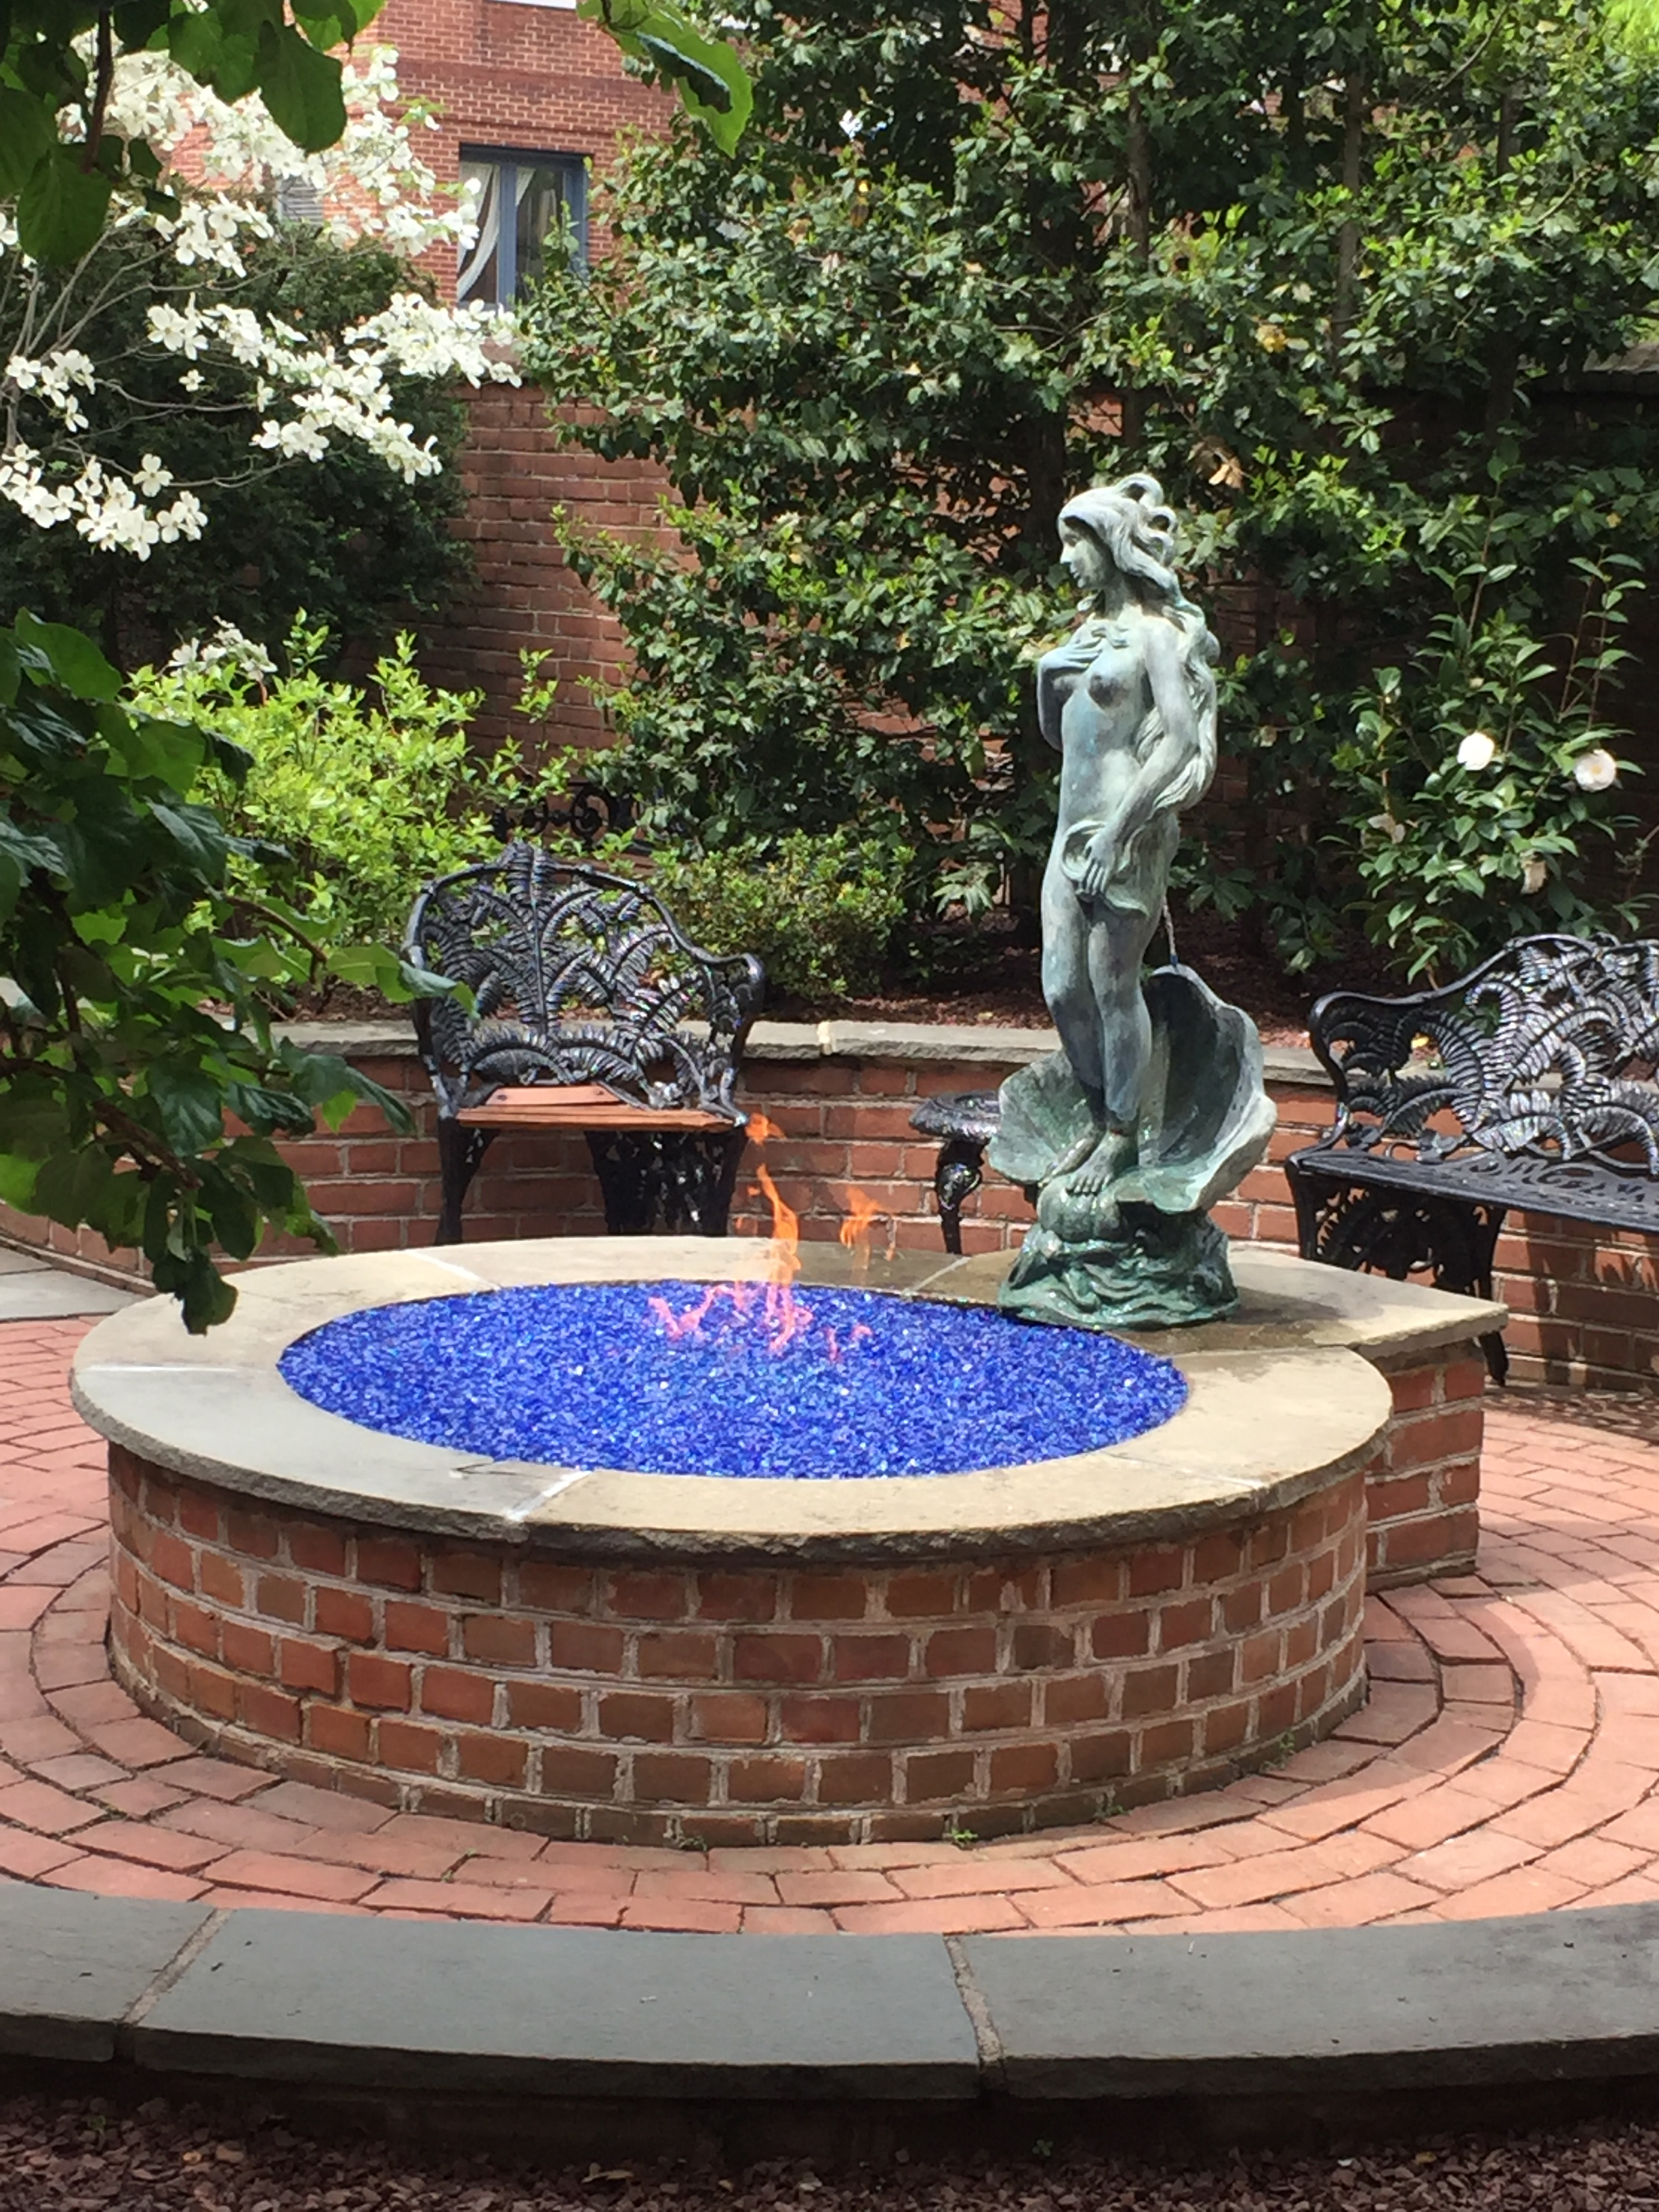 Creating a fire pit & statue with water in a center city garden